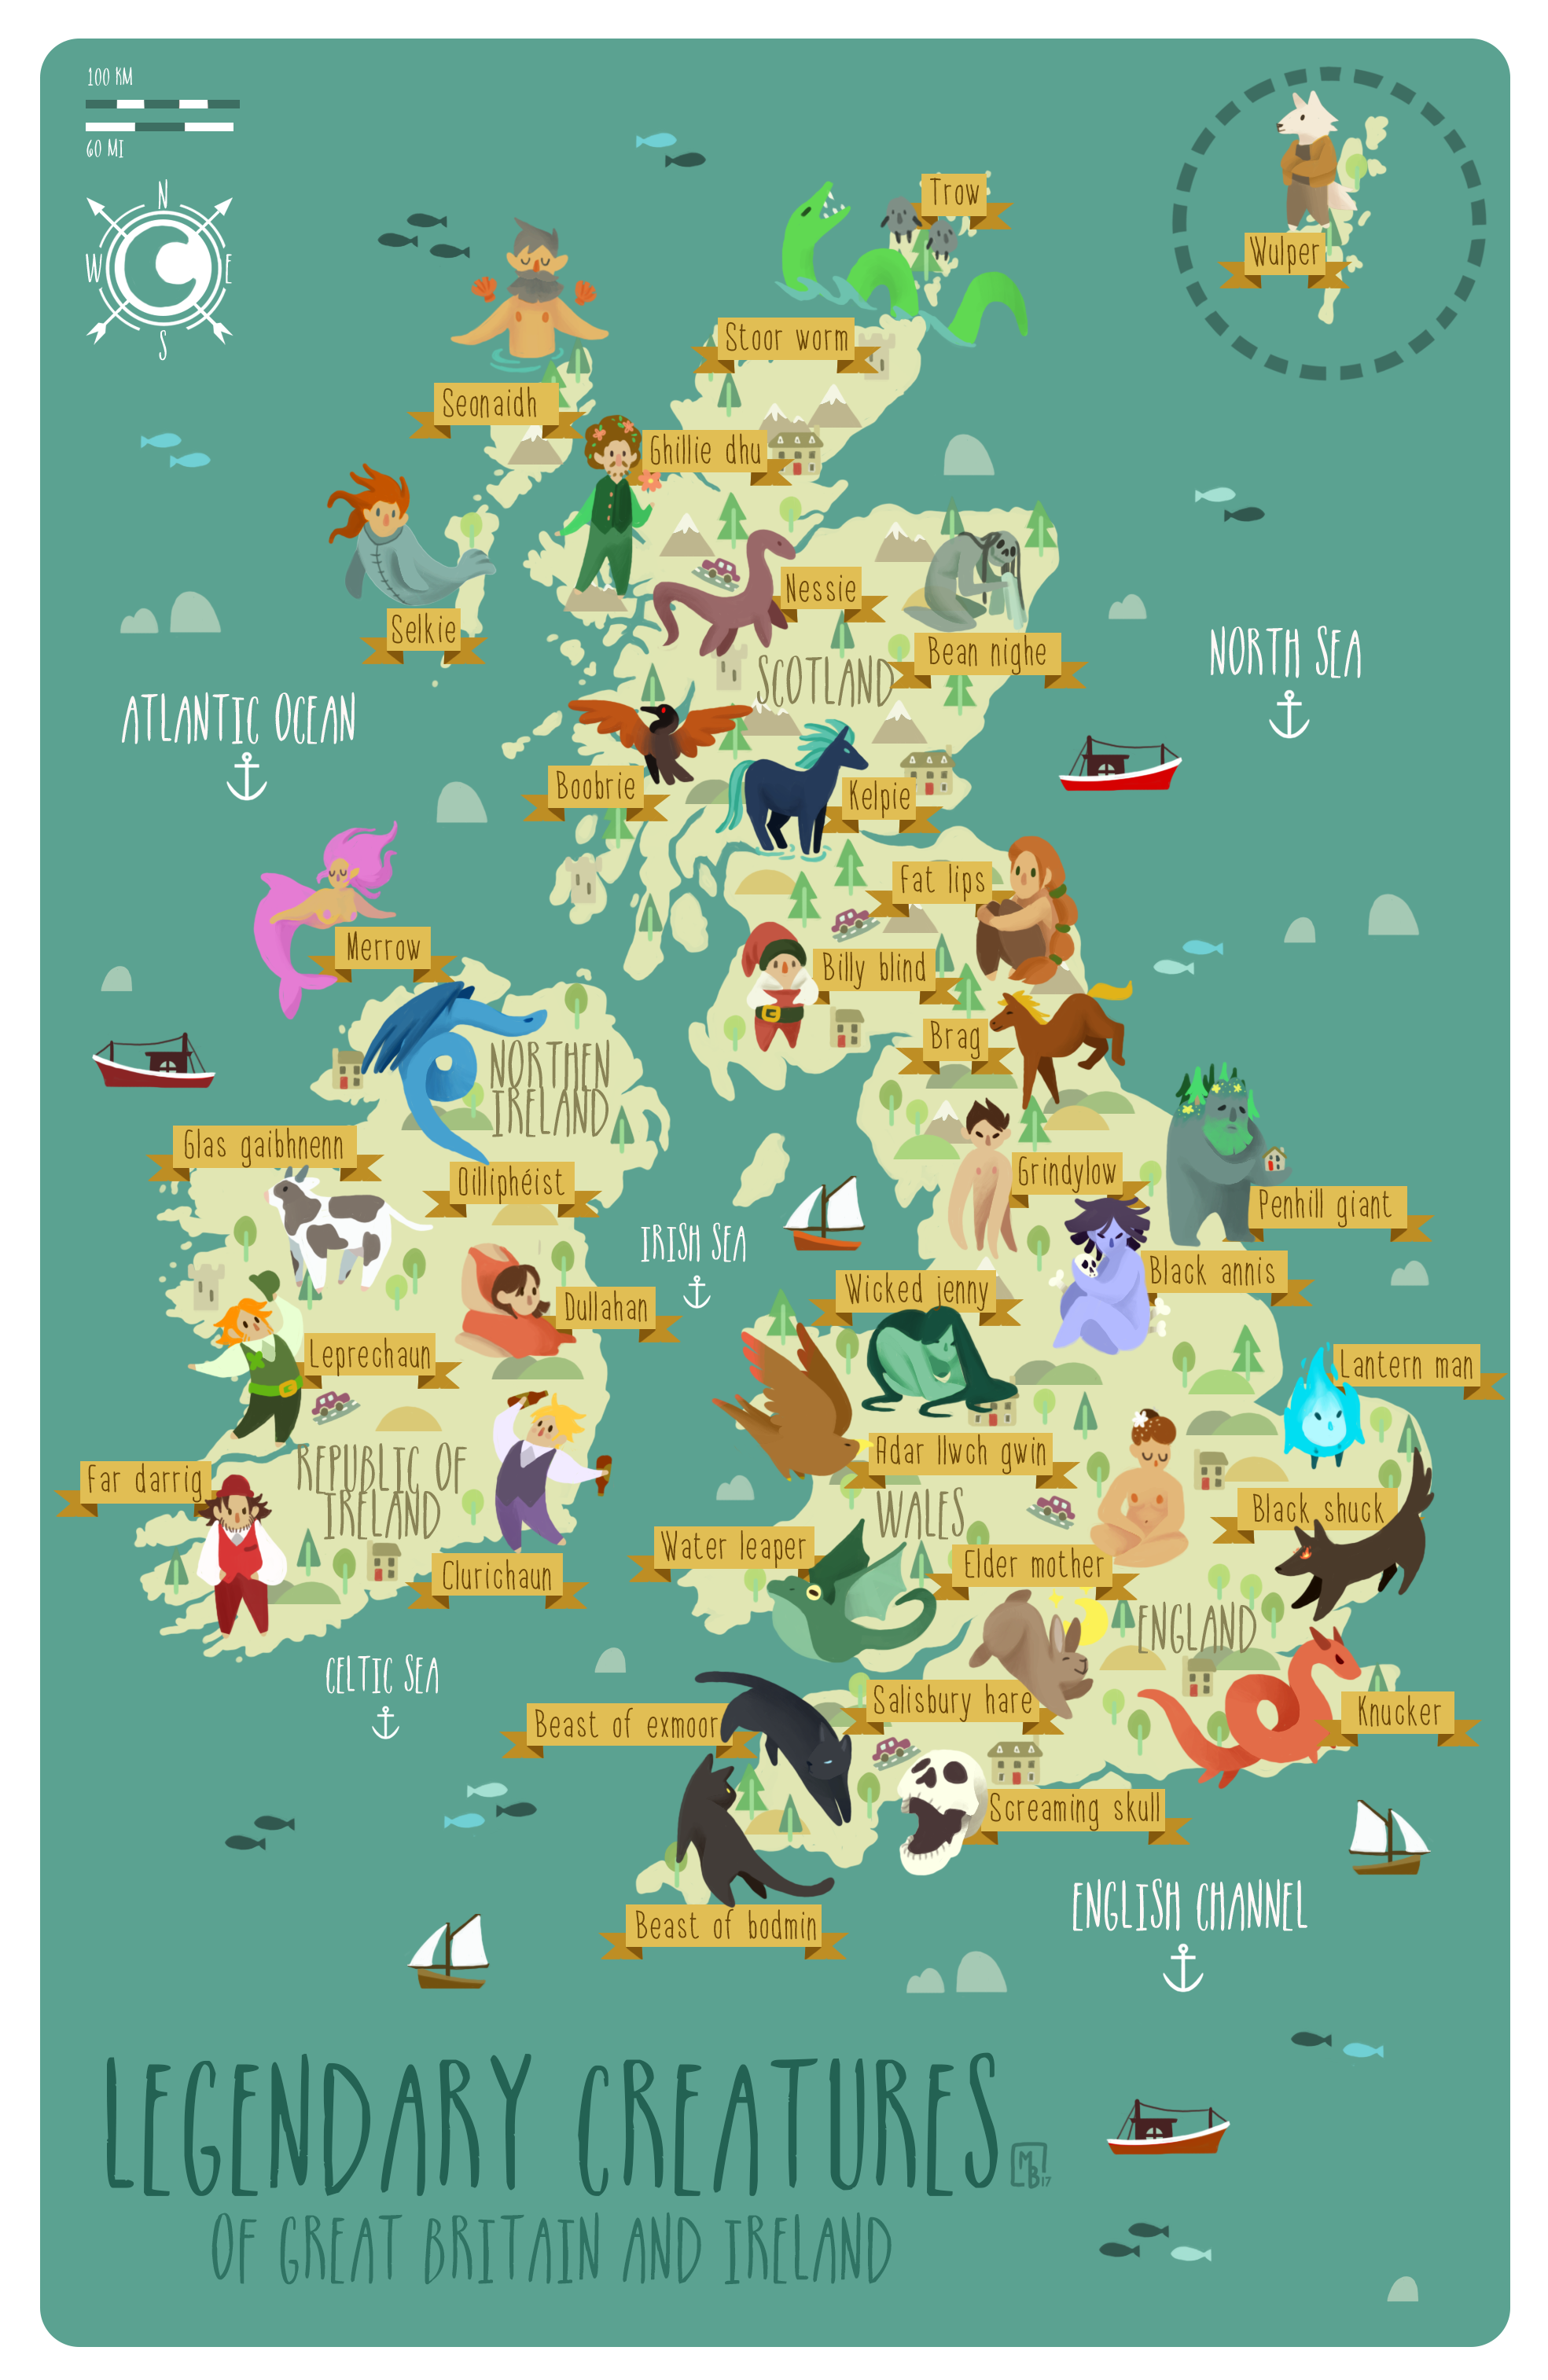 Legendary Creatures Of Great Britain And Ireland Legendary Creatures Of Great Britain And Ireland Asiatrave In 2020 Illustrated Map Great Britain Map Of Britain